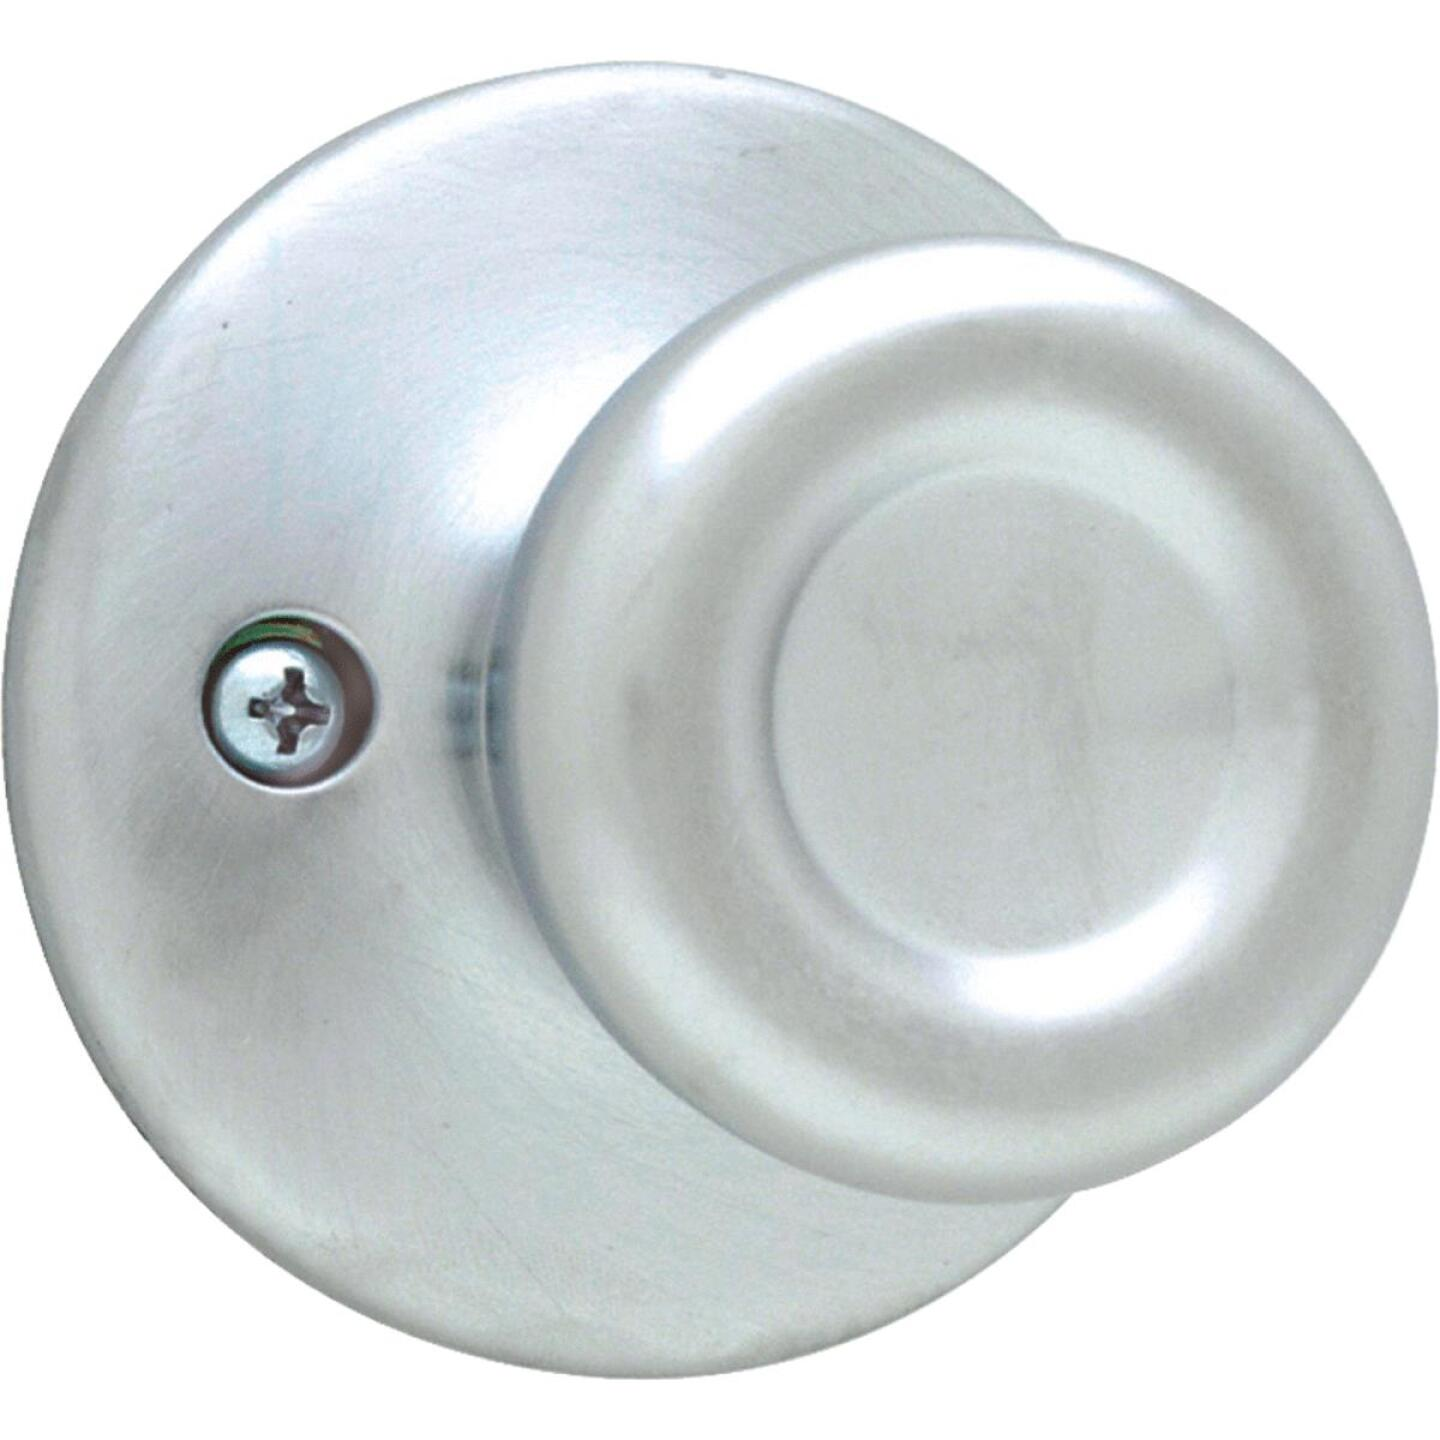 Kwikset Satin Chrome Tylo Dummy Door Knob Image 1